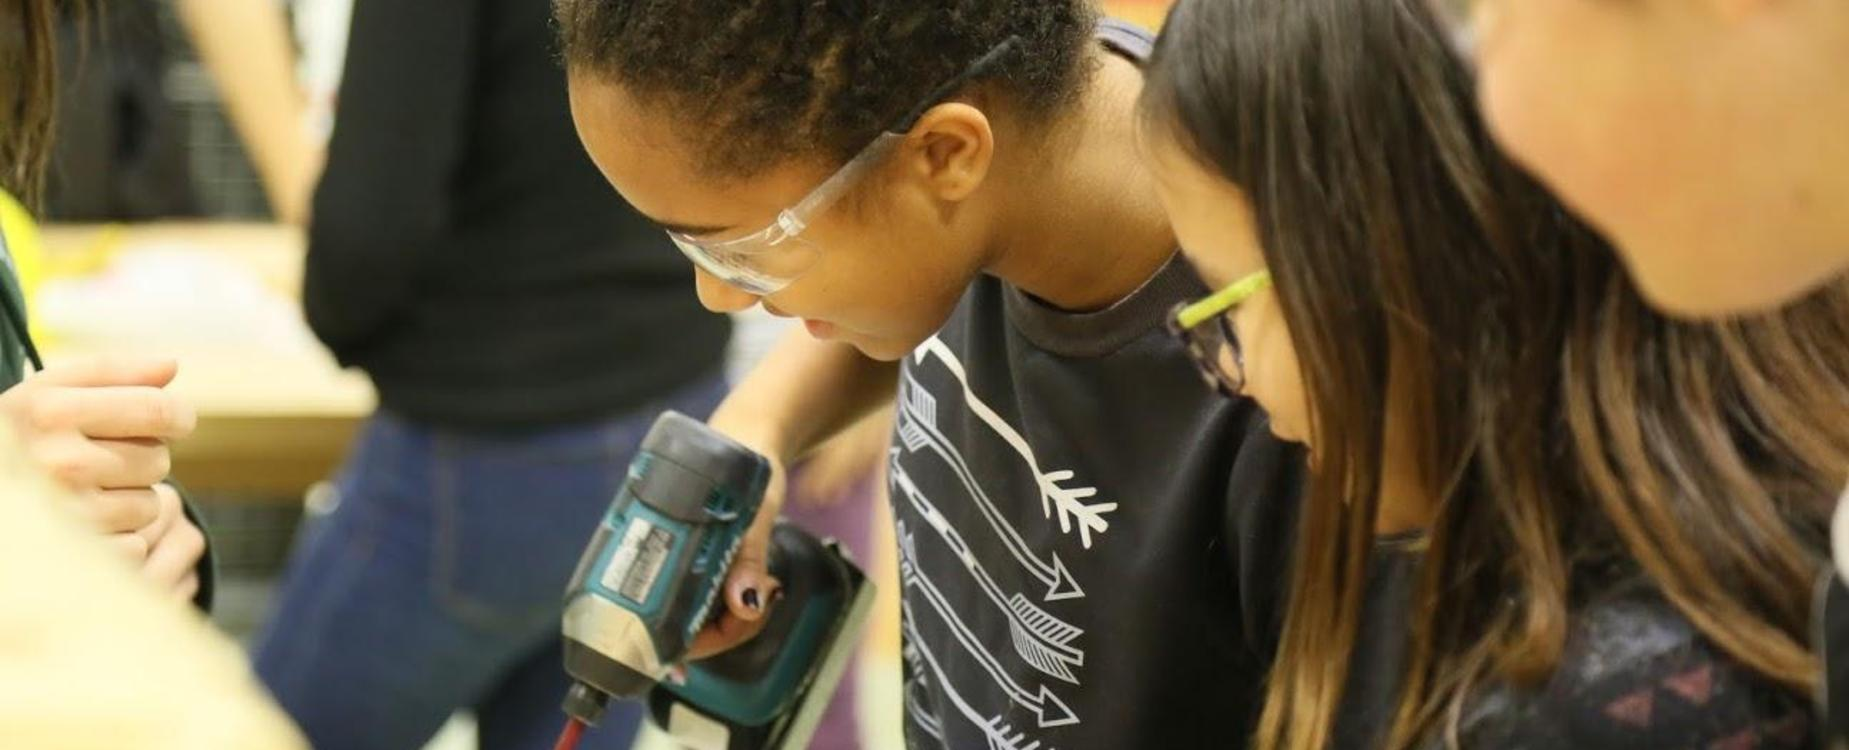 students using drill